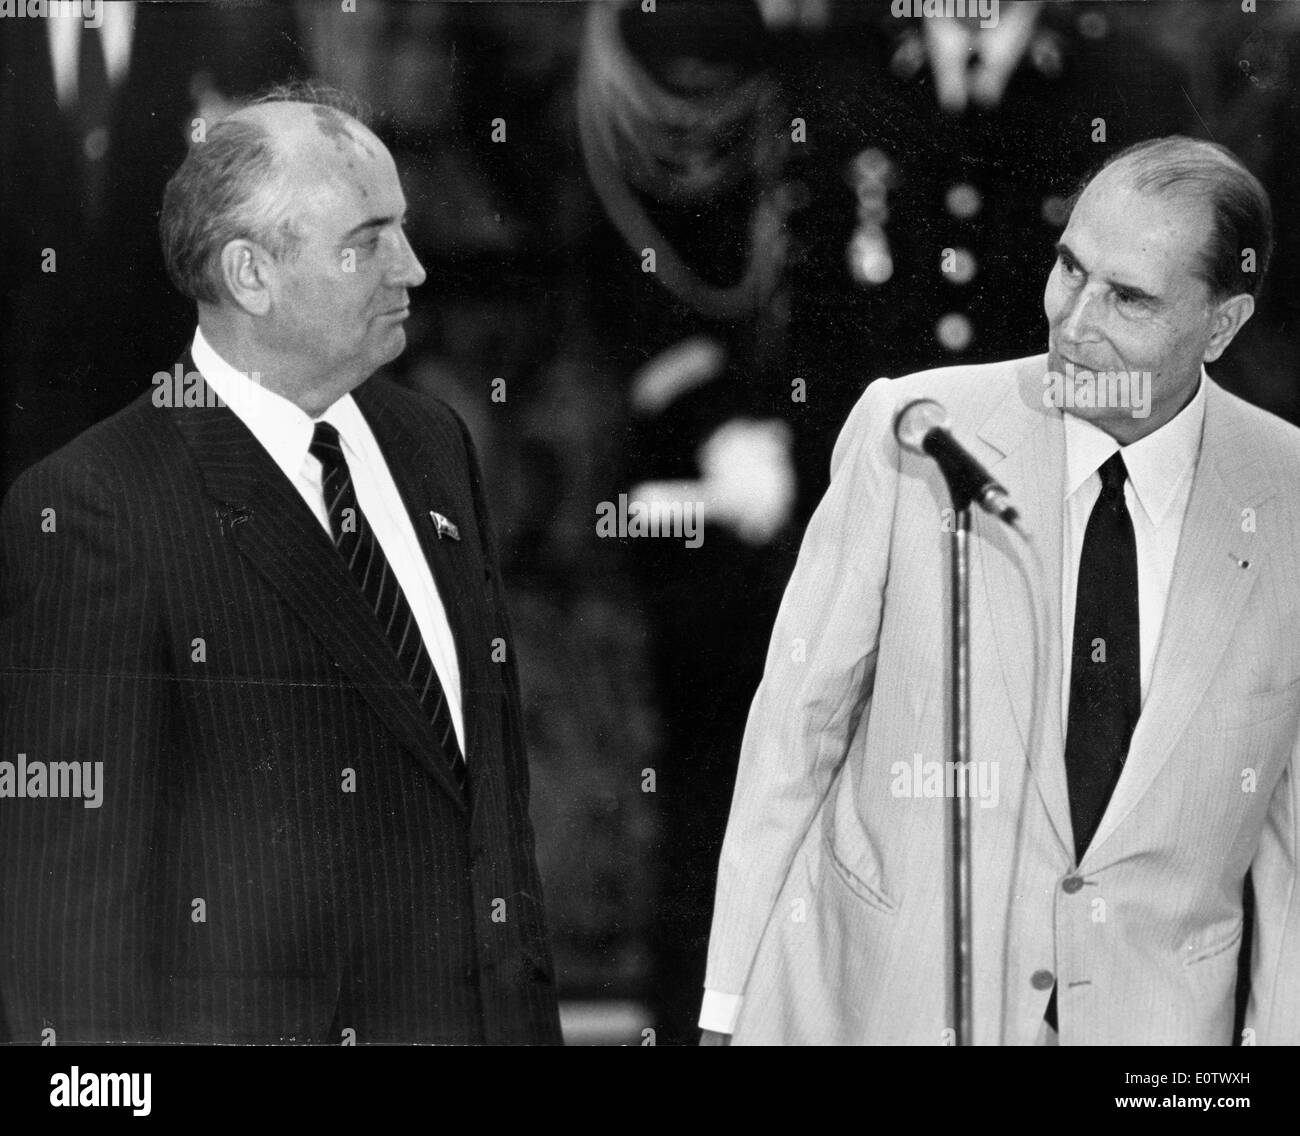 Mikhail Gorbachev talks with colleague at press conference - Stock Image